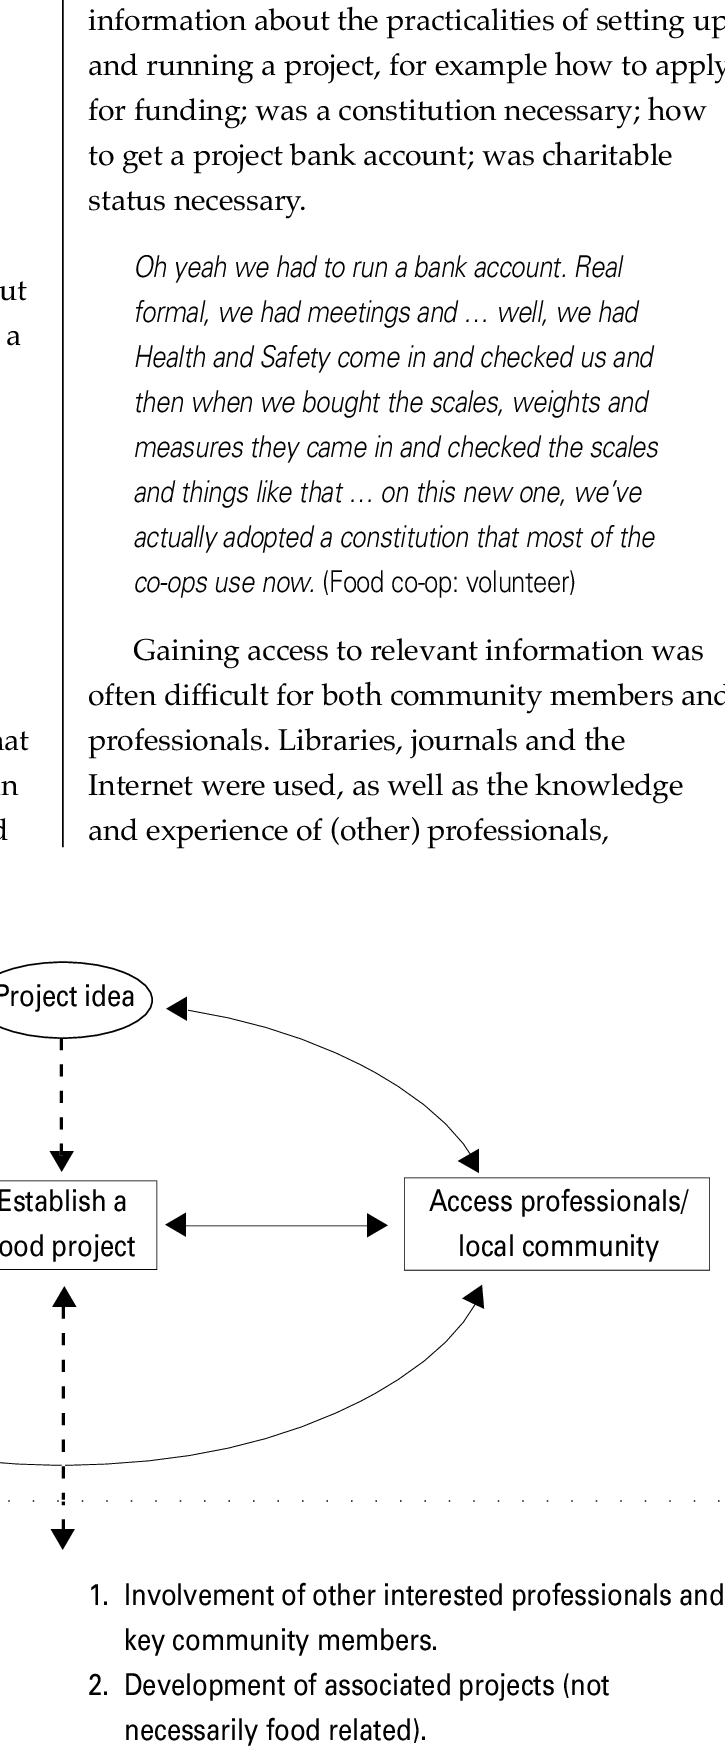 medium resolution of the process of setting up a food project